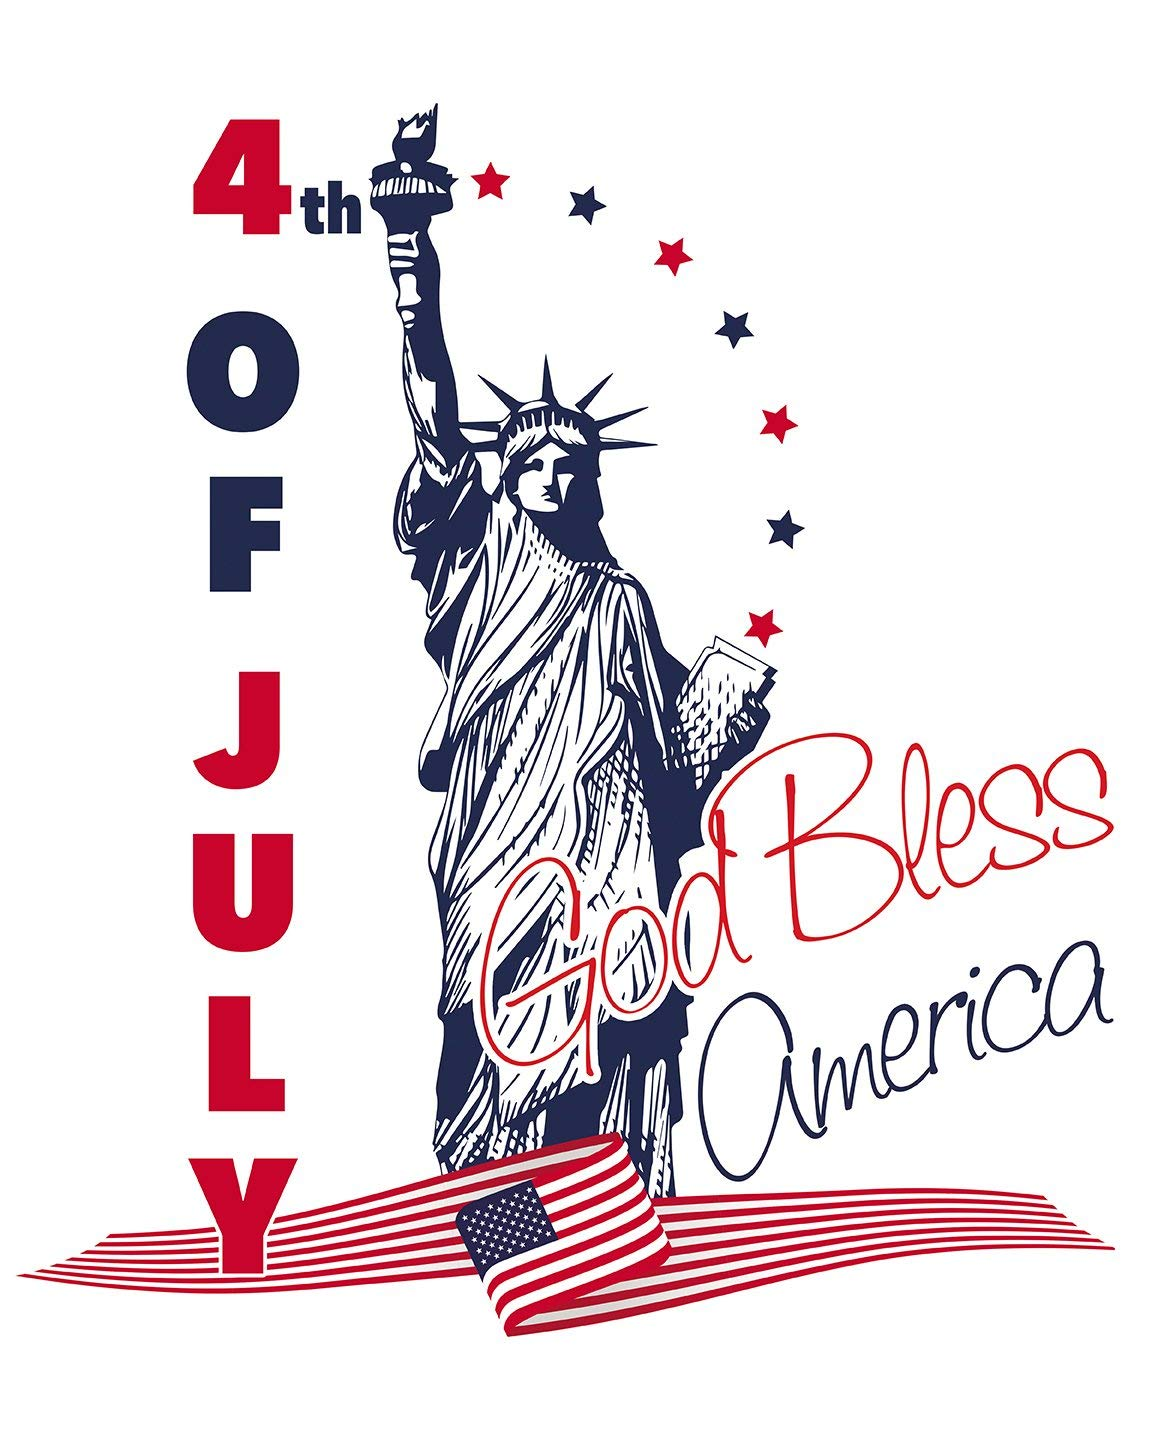 God Bless America, 4th of July, Independence Day, Statue of Liberty Shirt, Independence Day T-Shirt, Custom America Shirt, American Flag Country Tee, Patriotic Shirt, America Theme Party, Custom Shirt